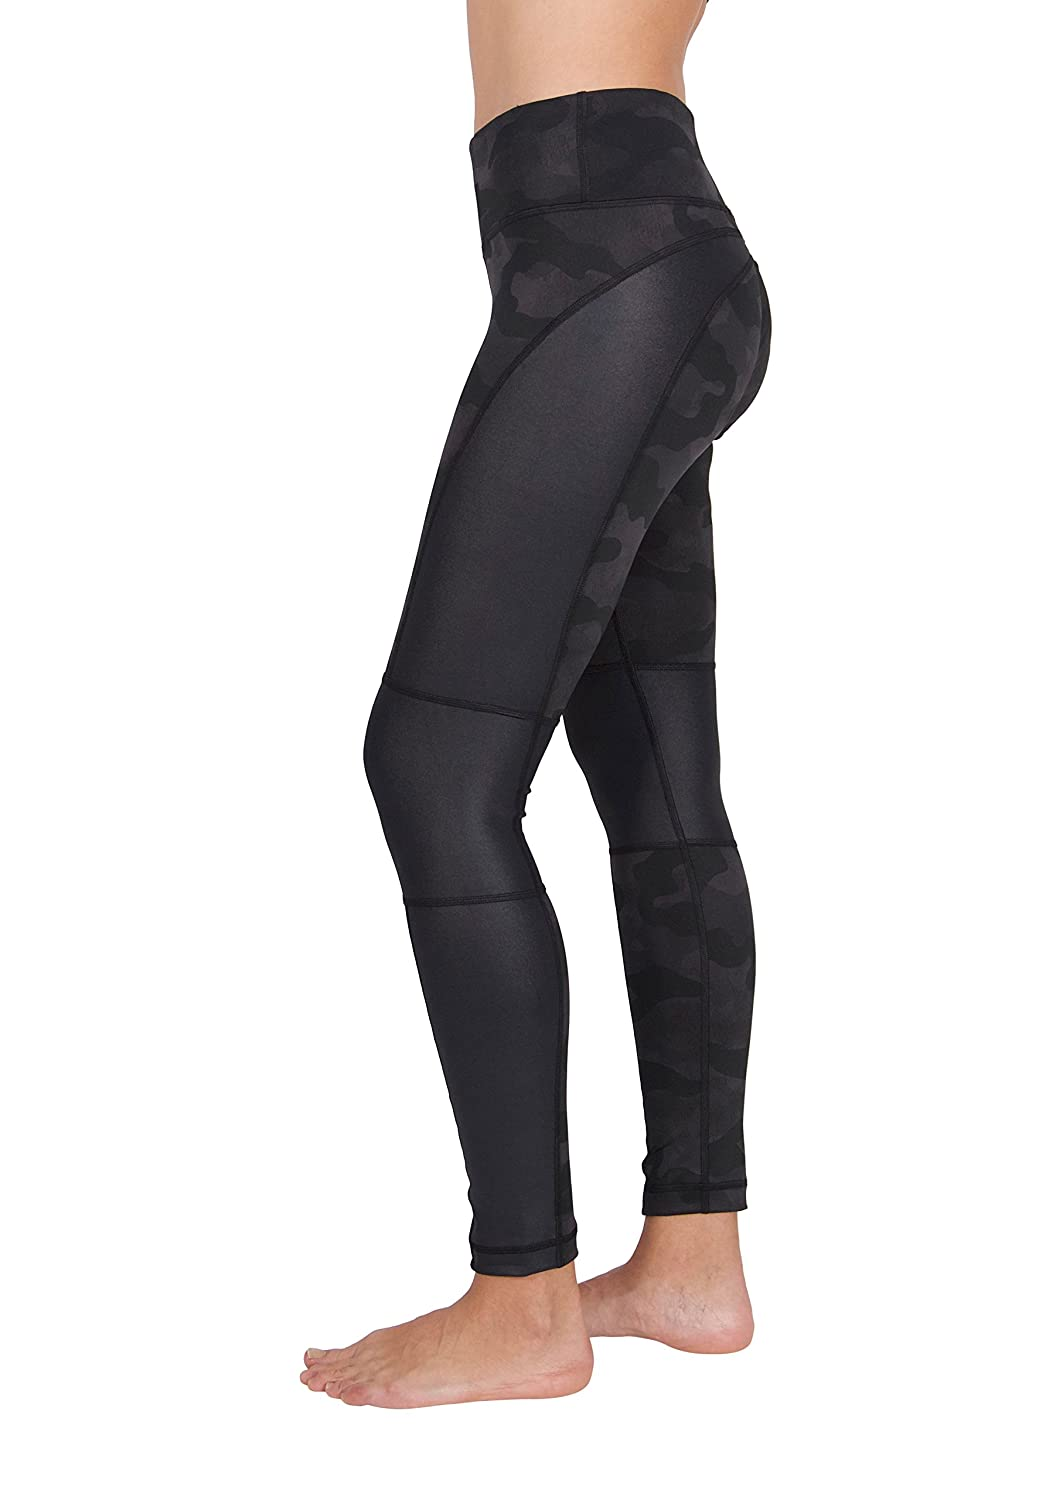 """dbb91bd88e184b The 90 Degree by Reflex 28"""" Missy Leggings – Etched Camo Leggings will have  you feeling fashionable and comfortable. You will look your best wearing  our ..."""